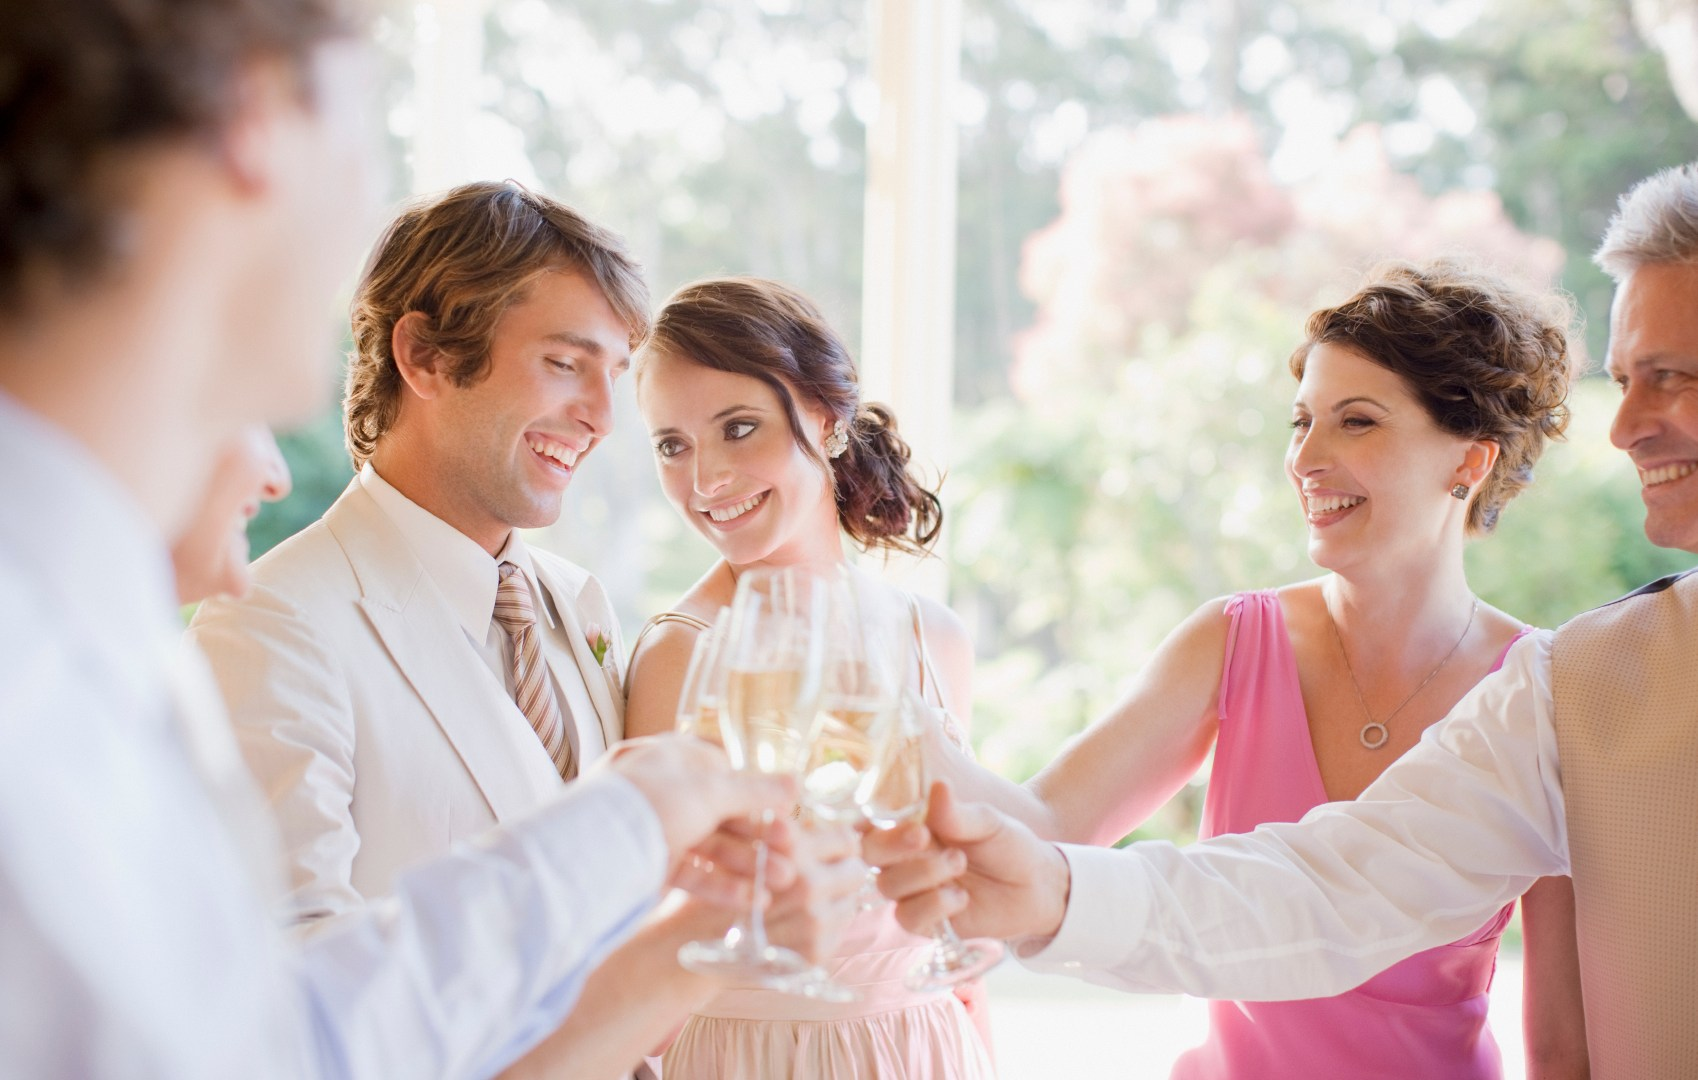 5 Ways To Meet Someone When Going To A Wedding Alone Jlife